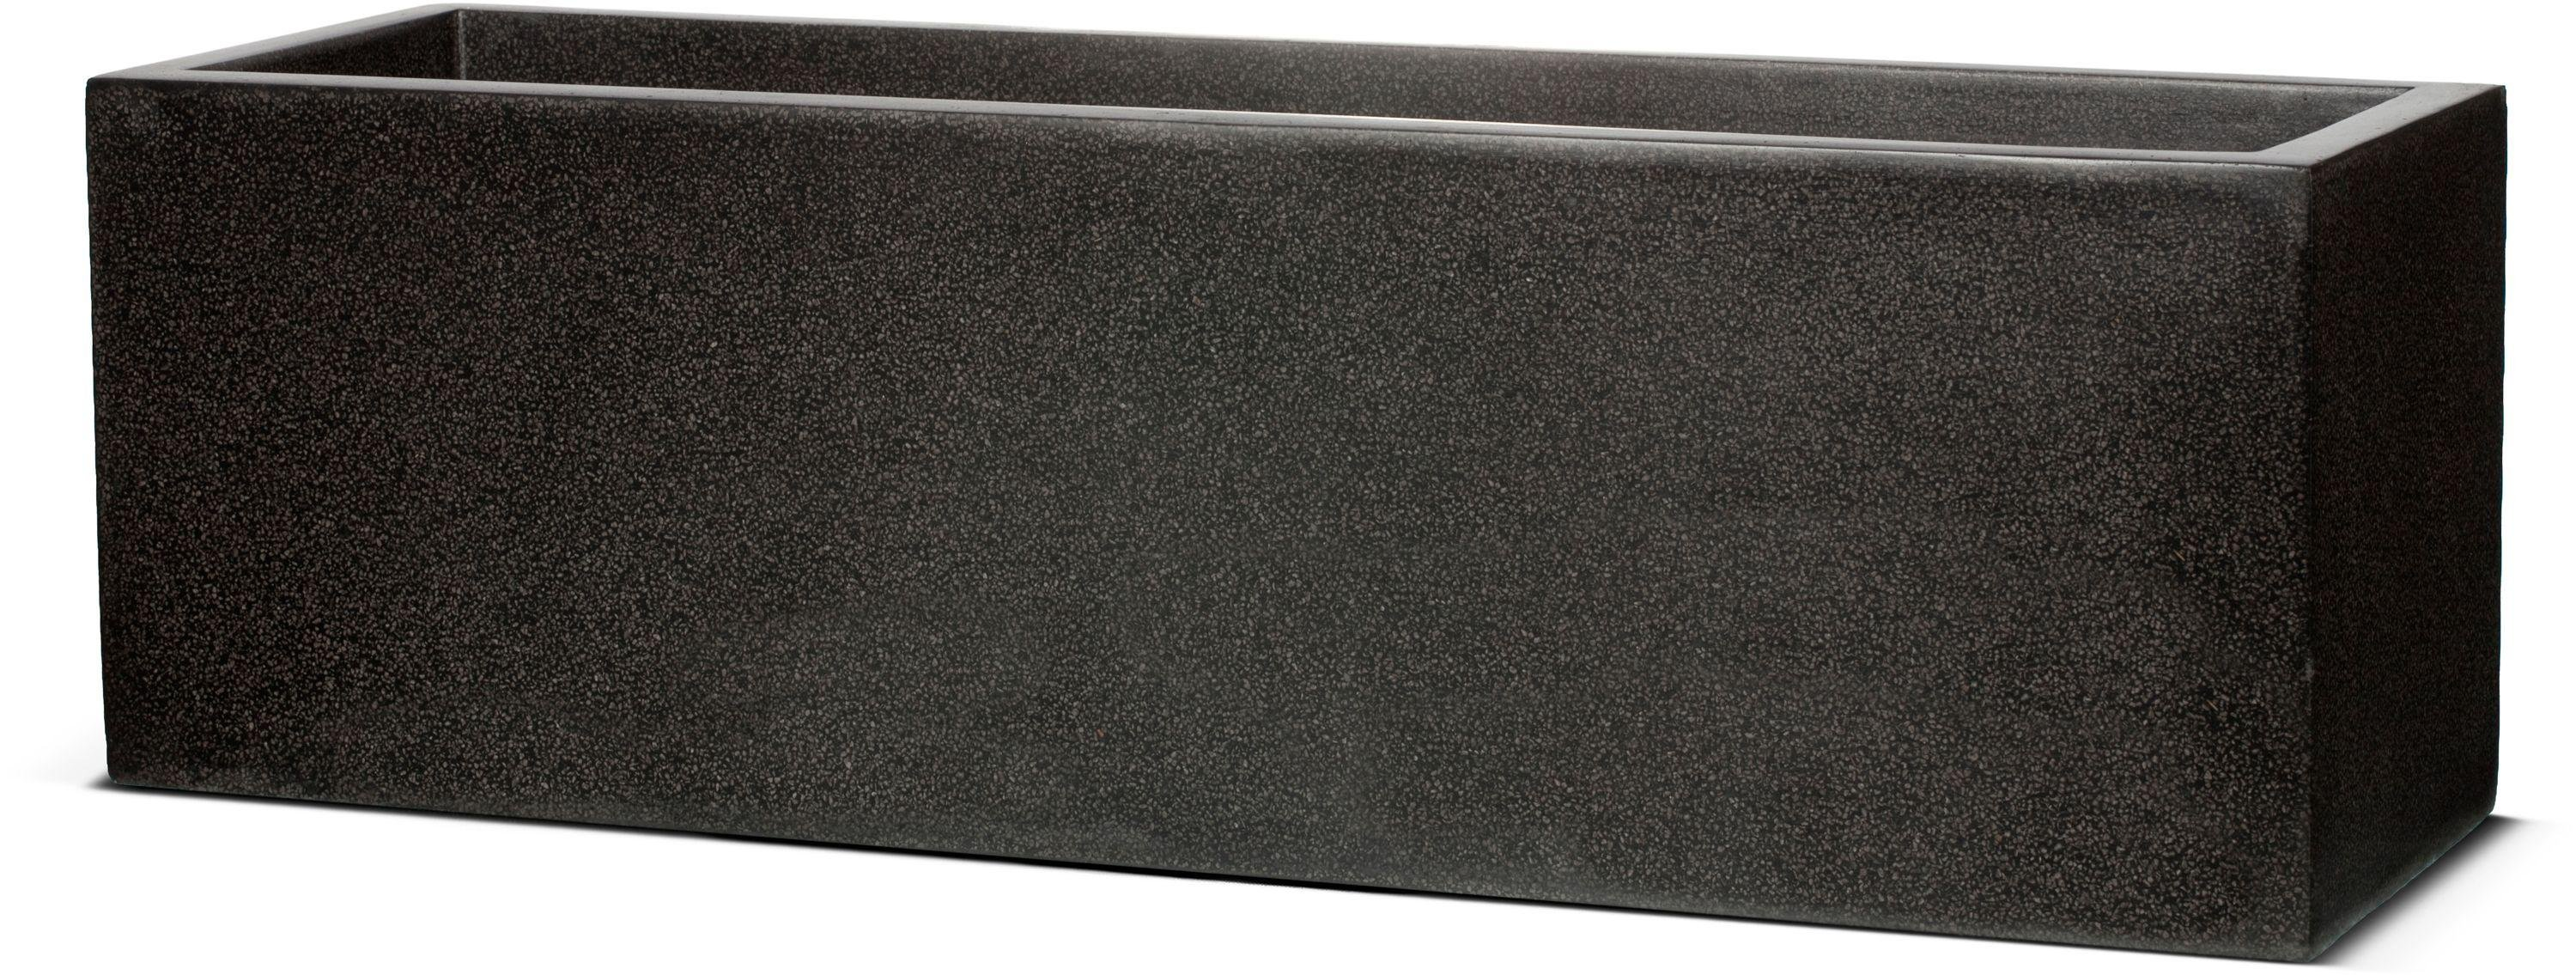 Image of Capi Lux Low Rectangular Planter - 88 x 28cm.